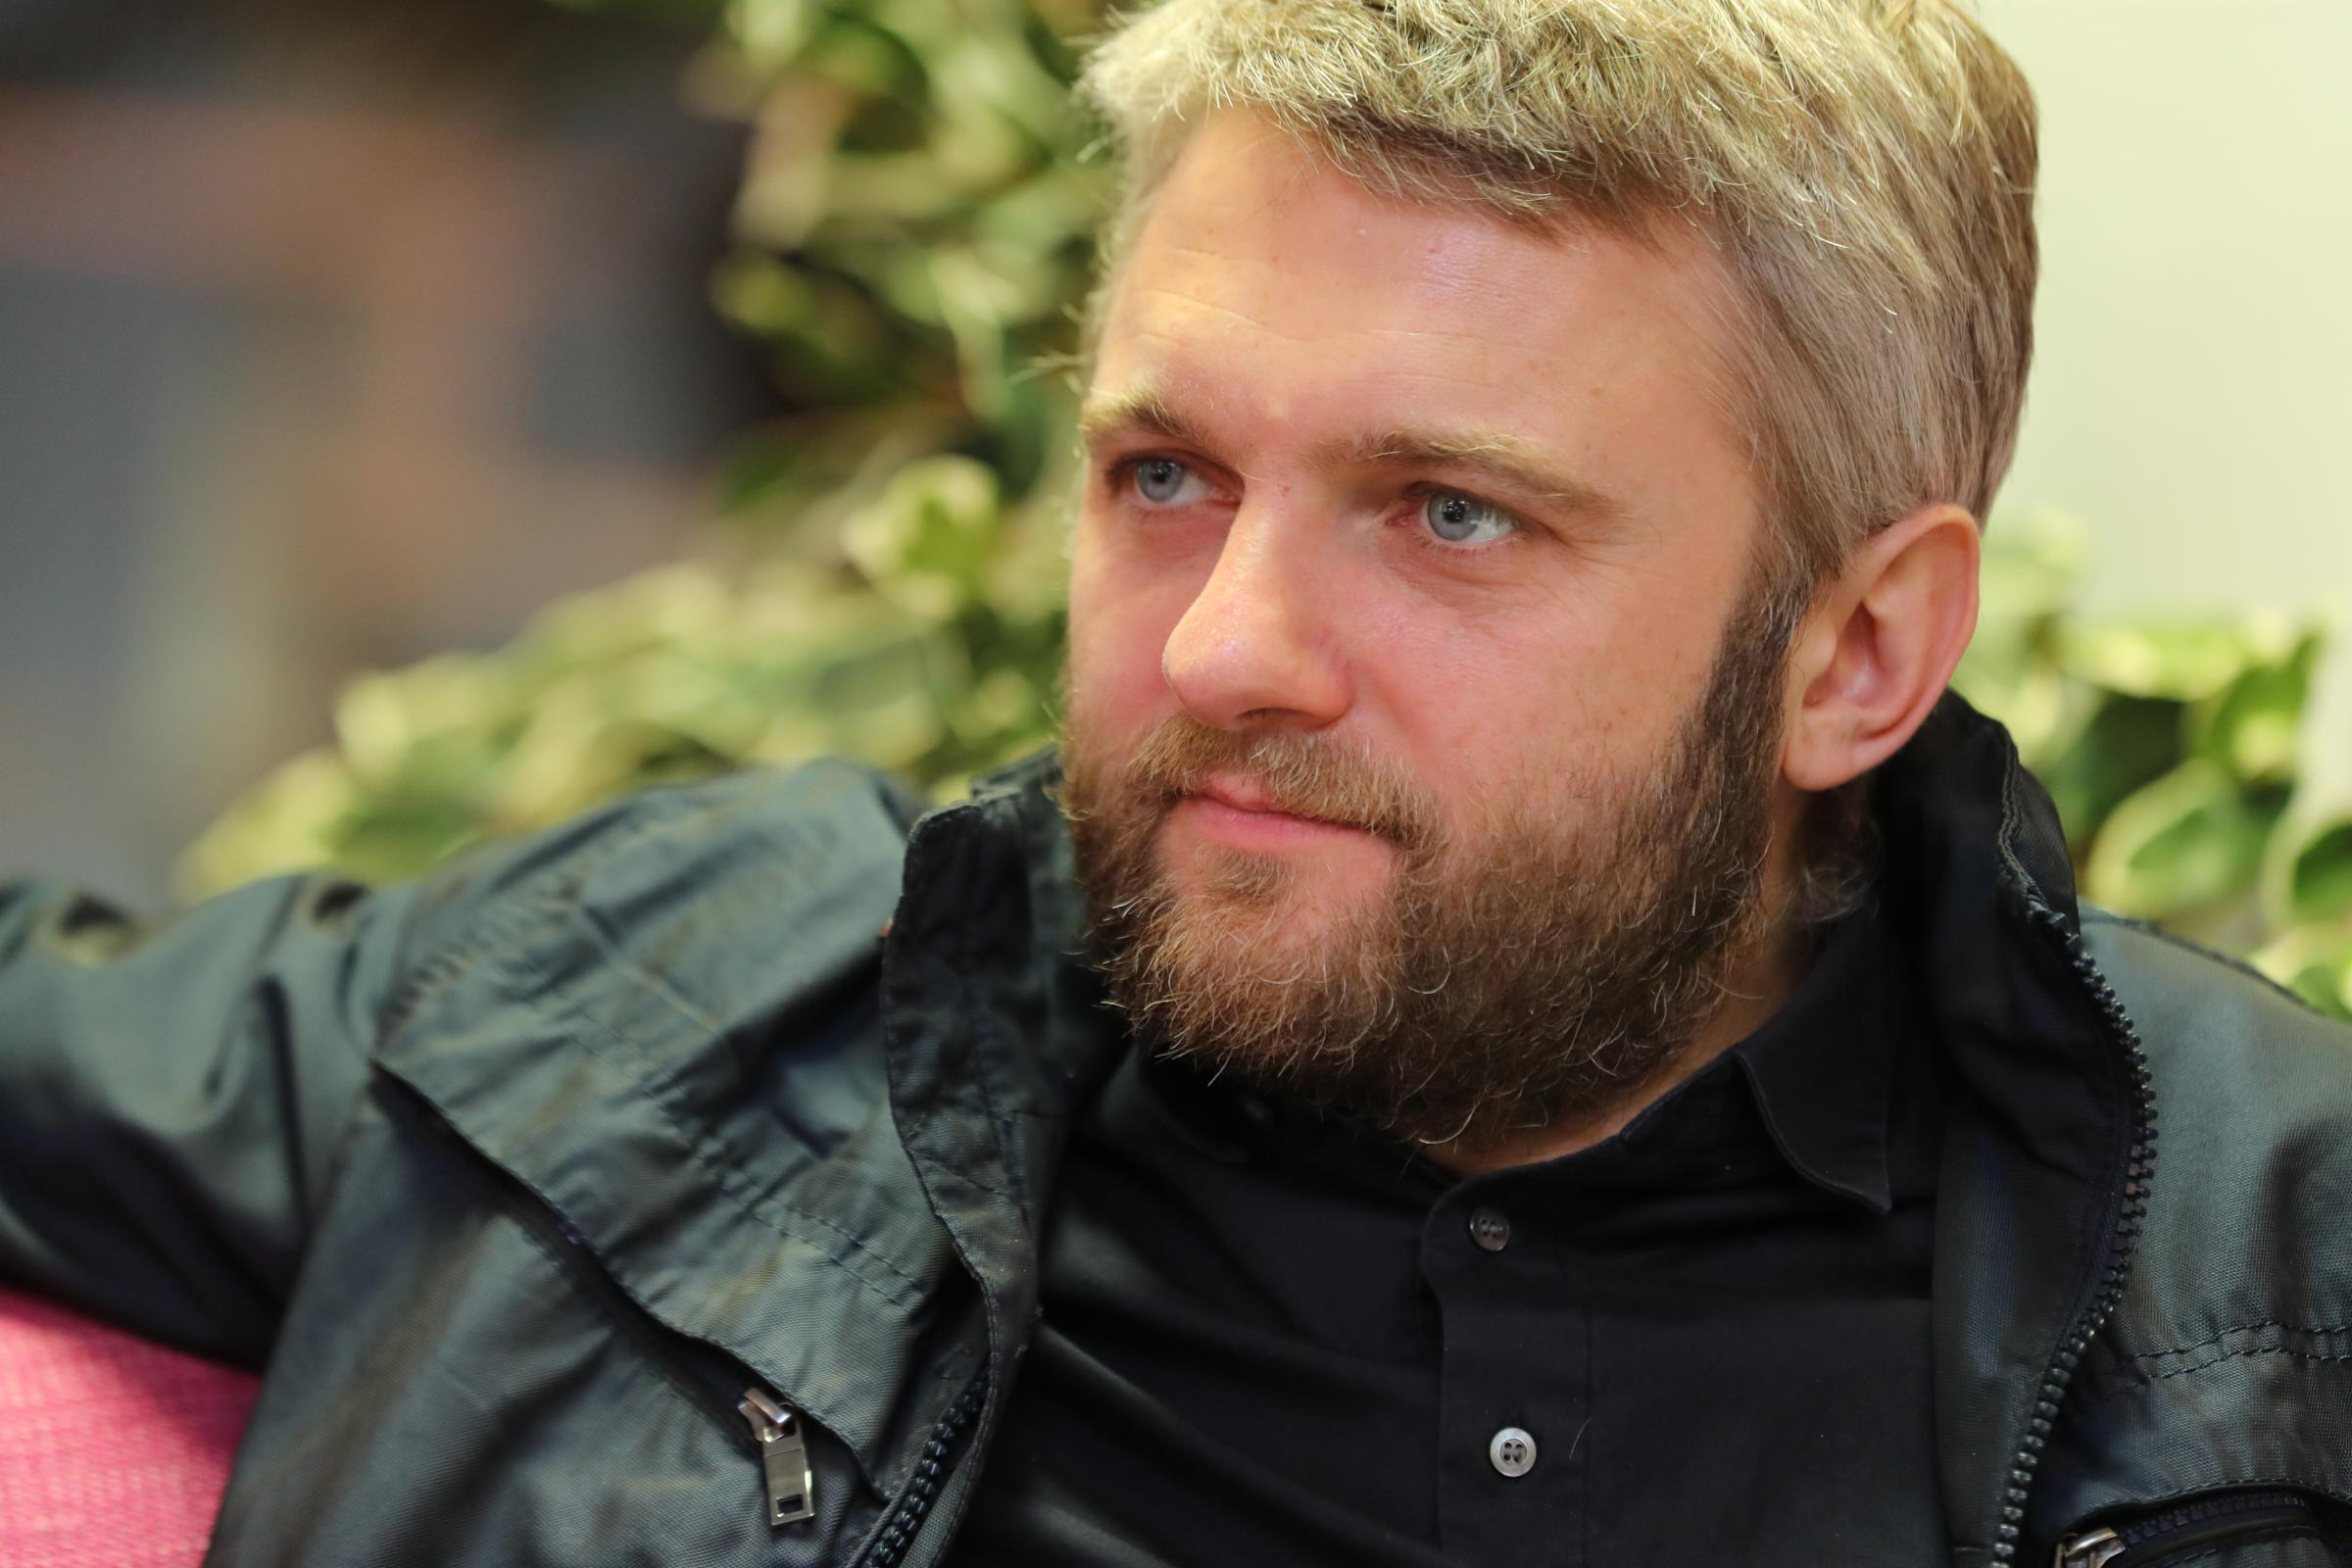 Kirill Karabits says 'Beethoven sealed the deal with BSO'